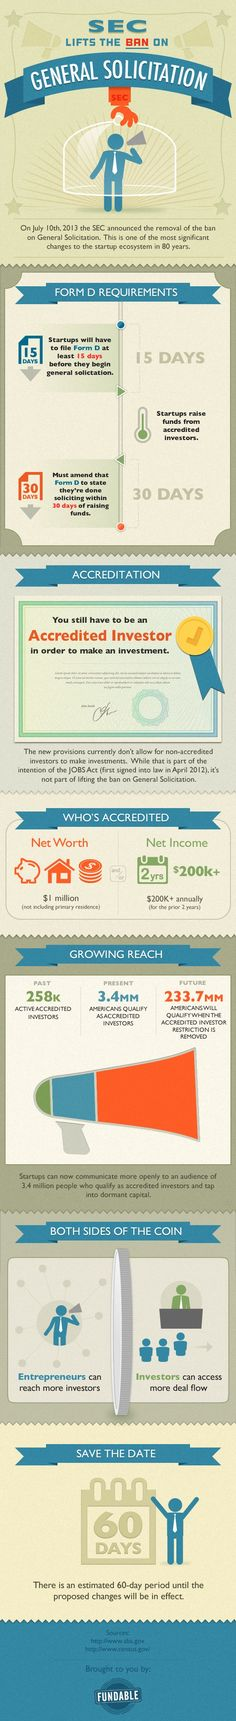 Fundable has released the following infographic explaining the high-level details of the removal of the ban on general solicitation for select private placement offerings. Fundable is a Columbus, Ohio based crowdfunding platform.